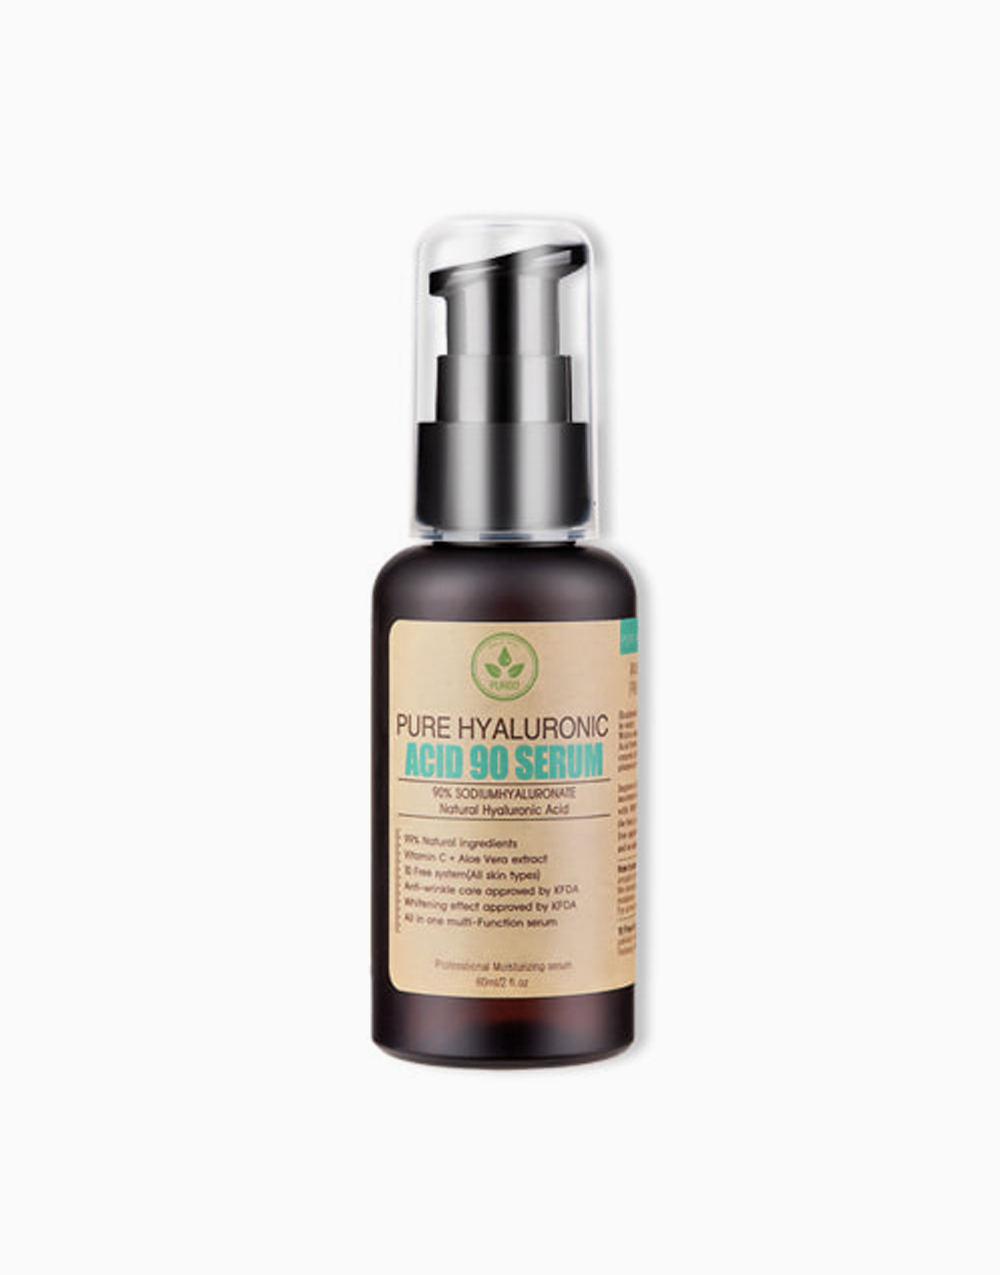 Pure Hyaluronic Acid 90 Serum by Purito